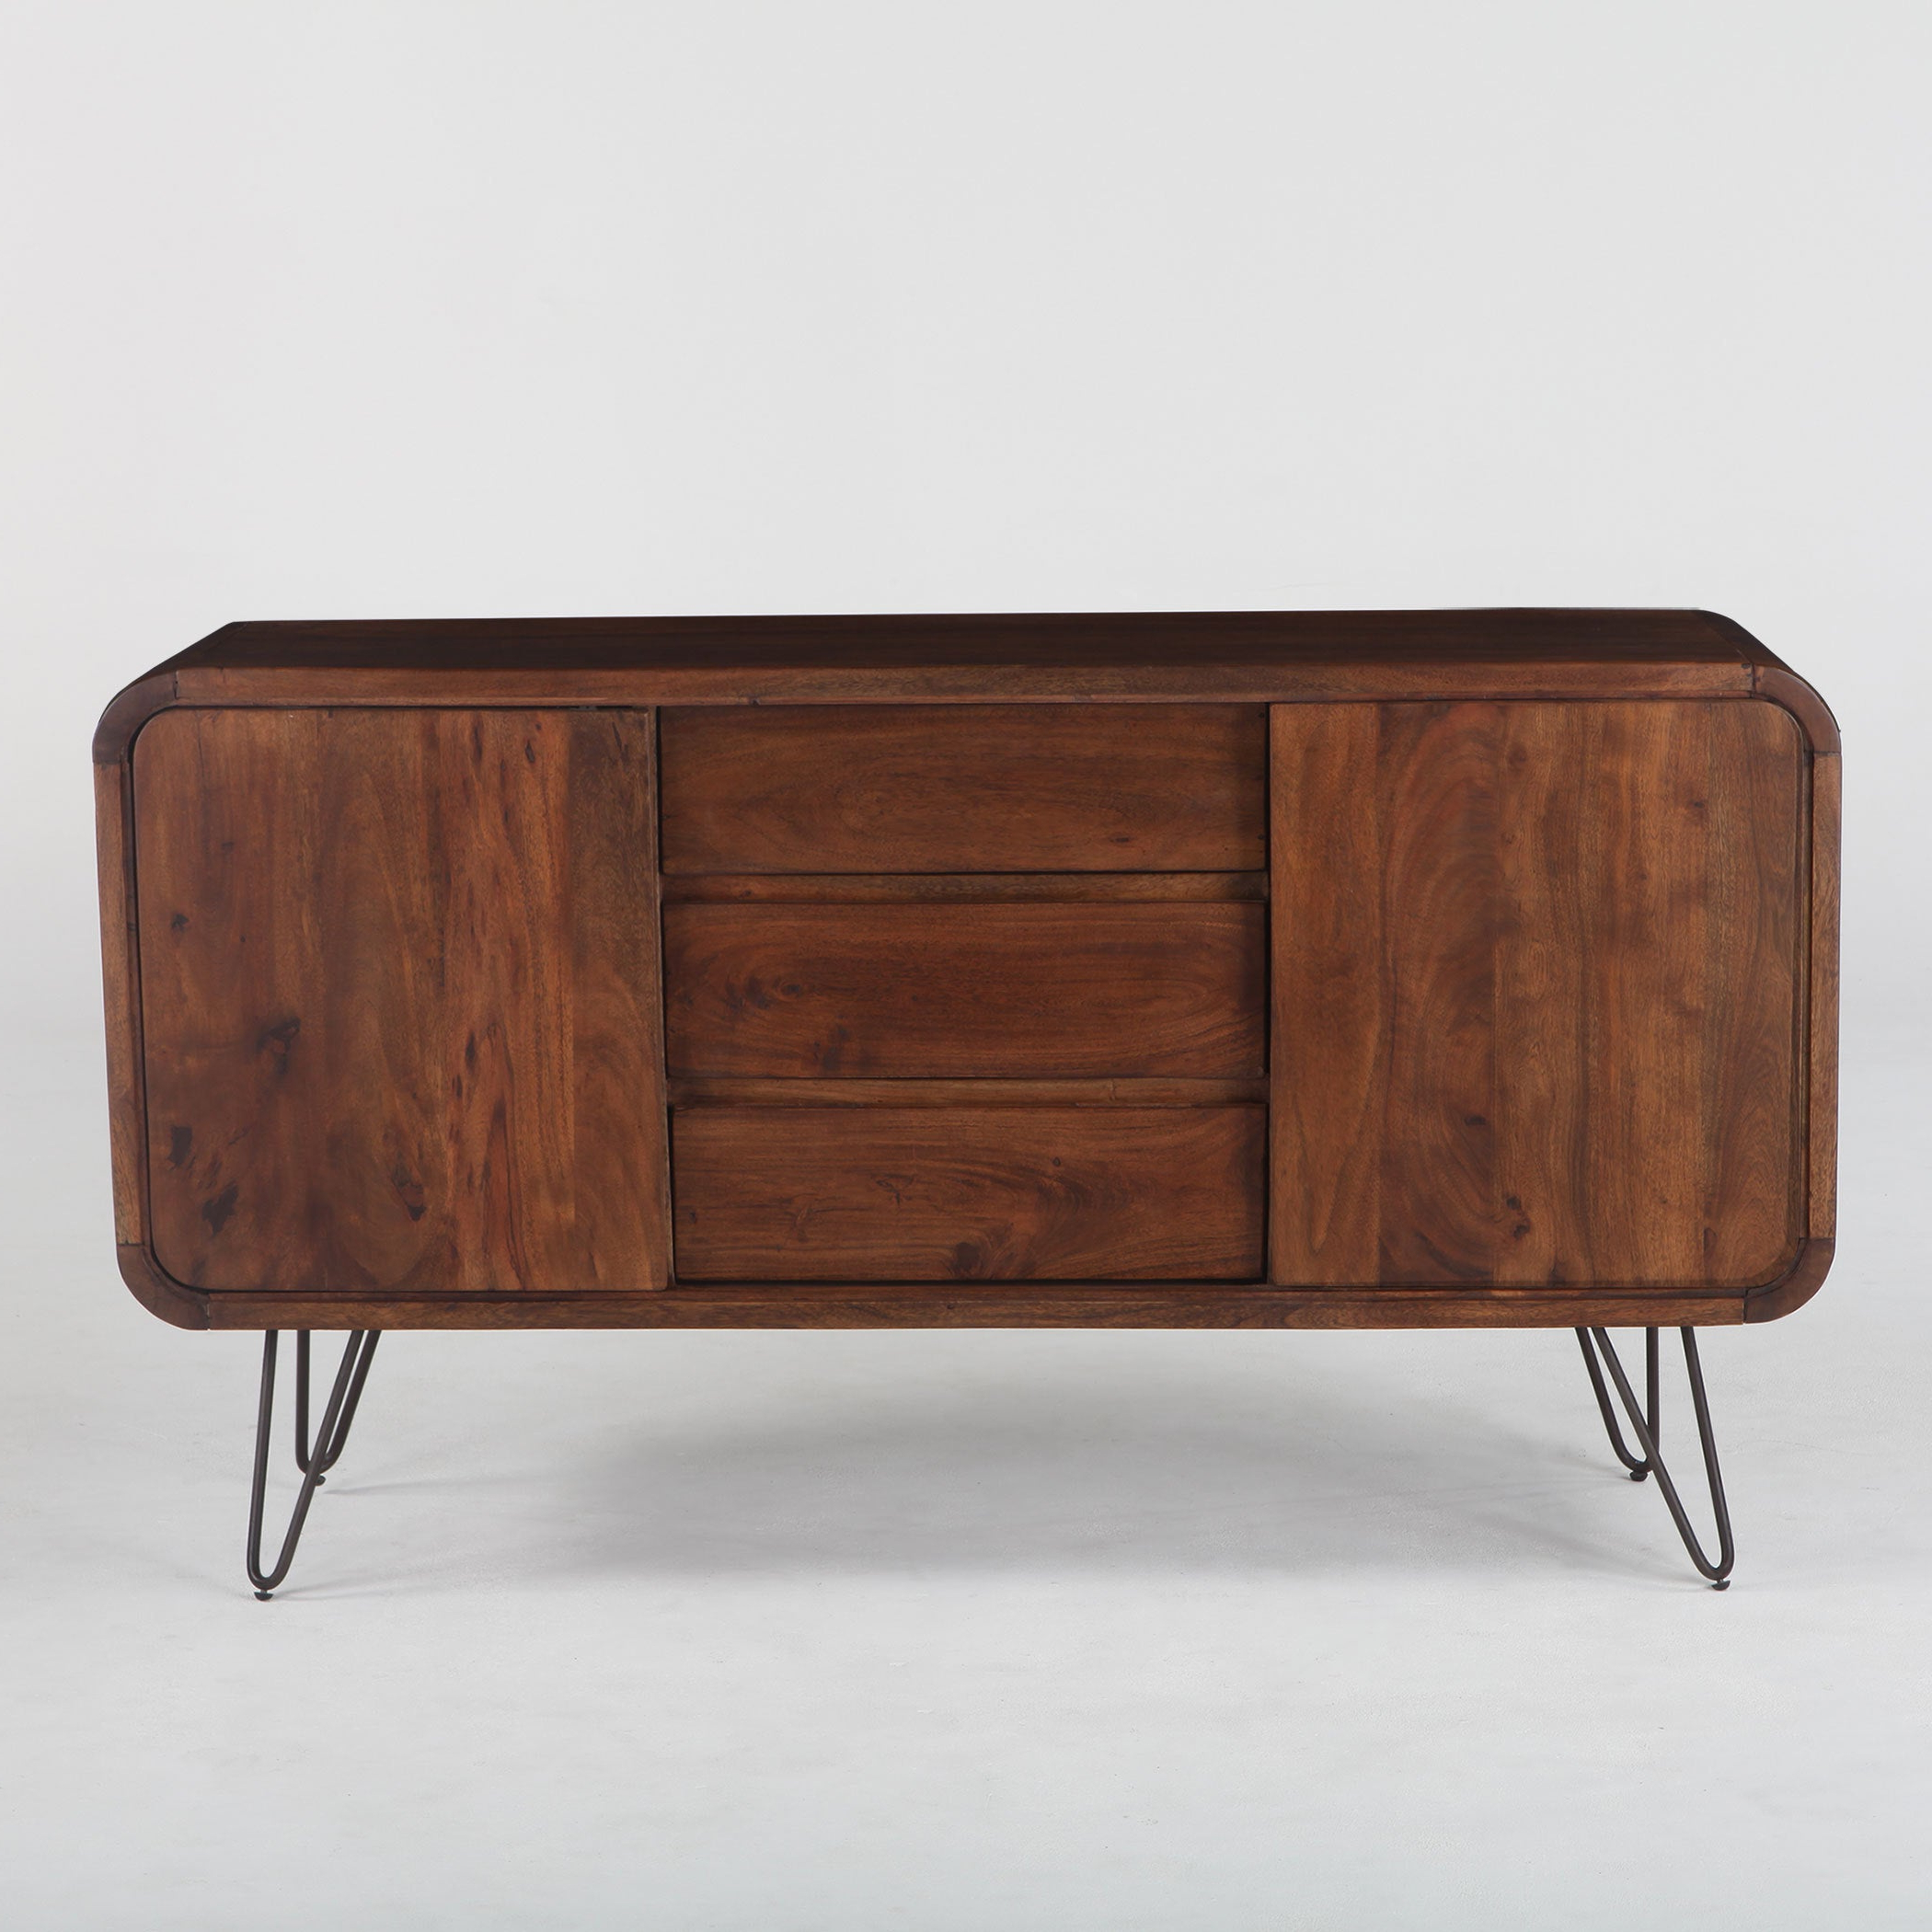 Buy Acacia Buffets, Sideboards & China Cabinets Online At With Regard To Rustic Walnut Buffets (View 3 of 20)